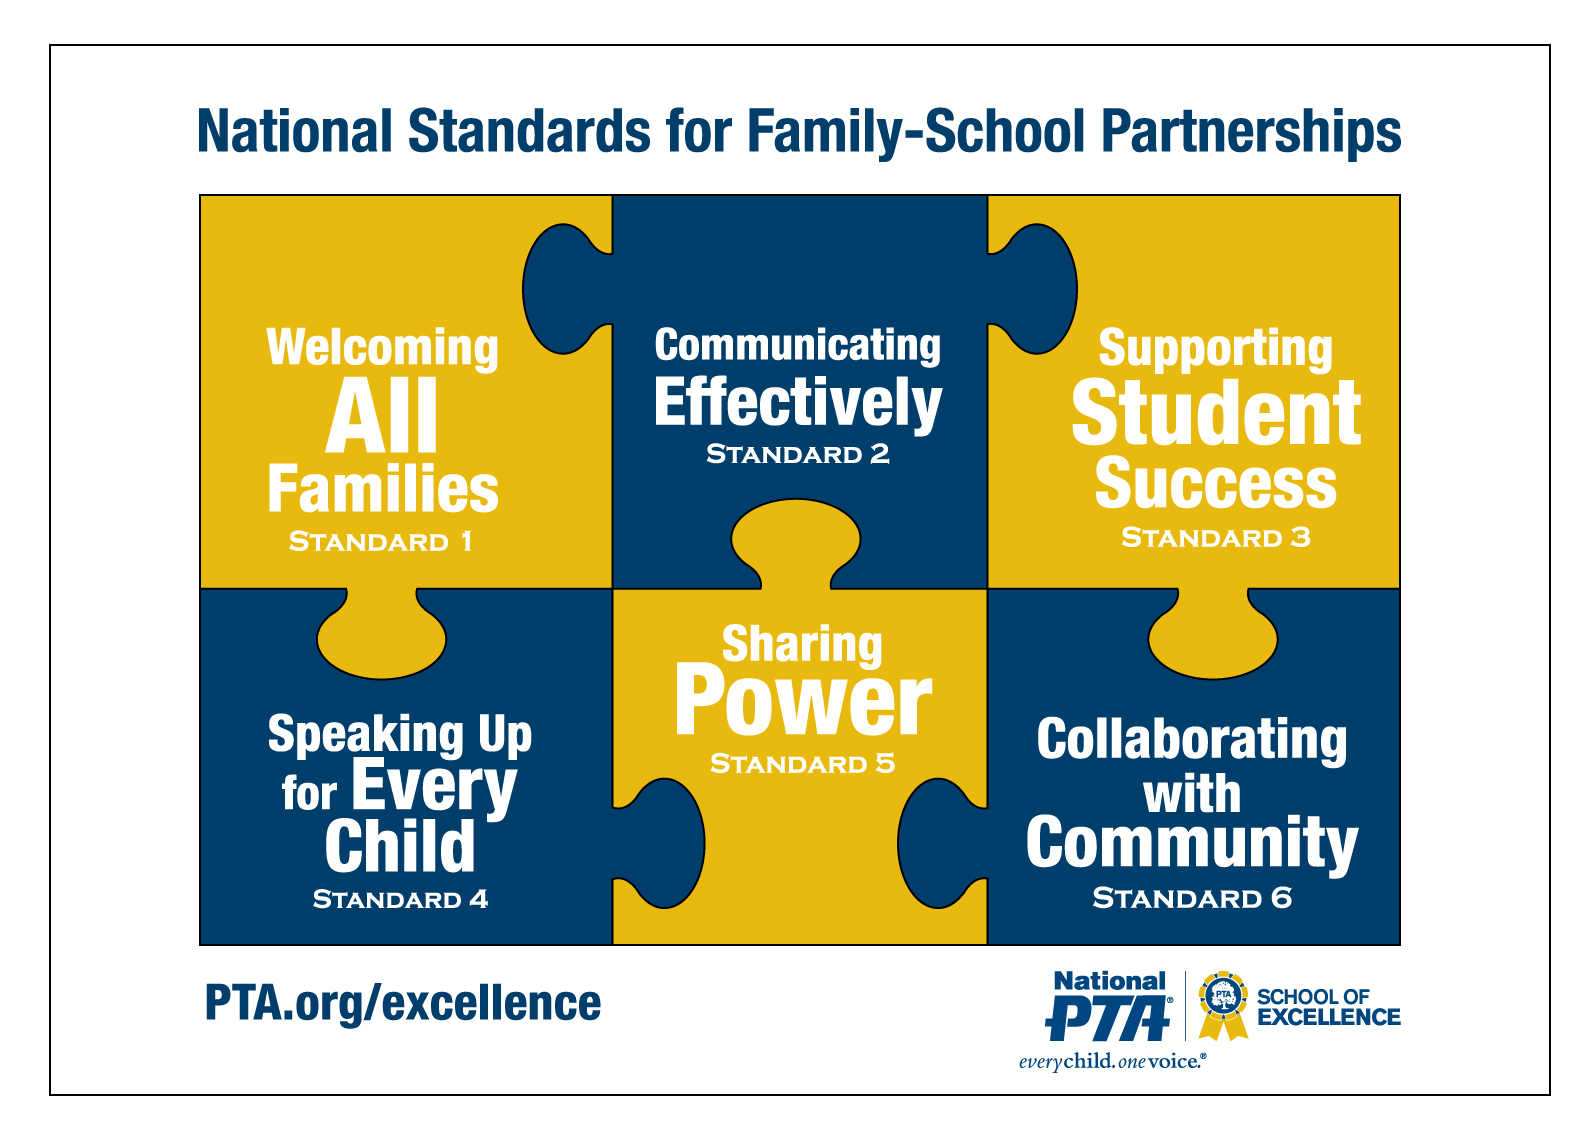 This in an image of the School of Excellence Standards.